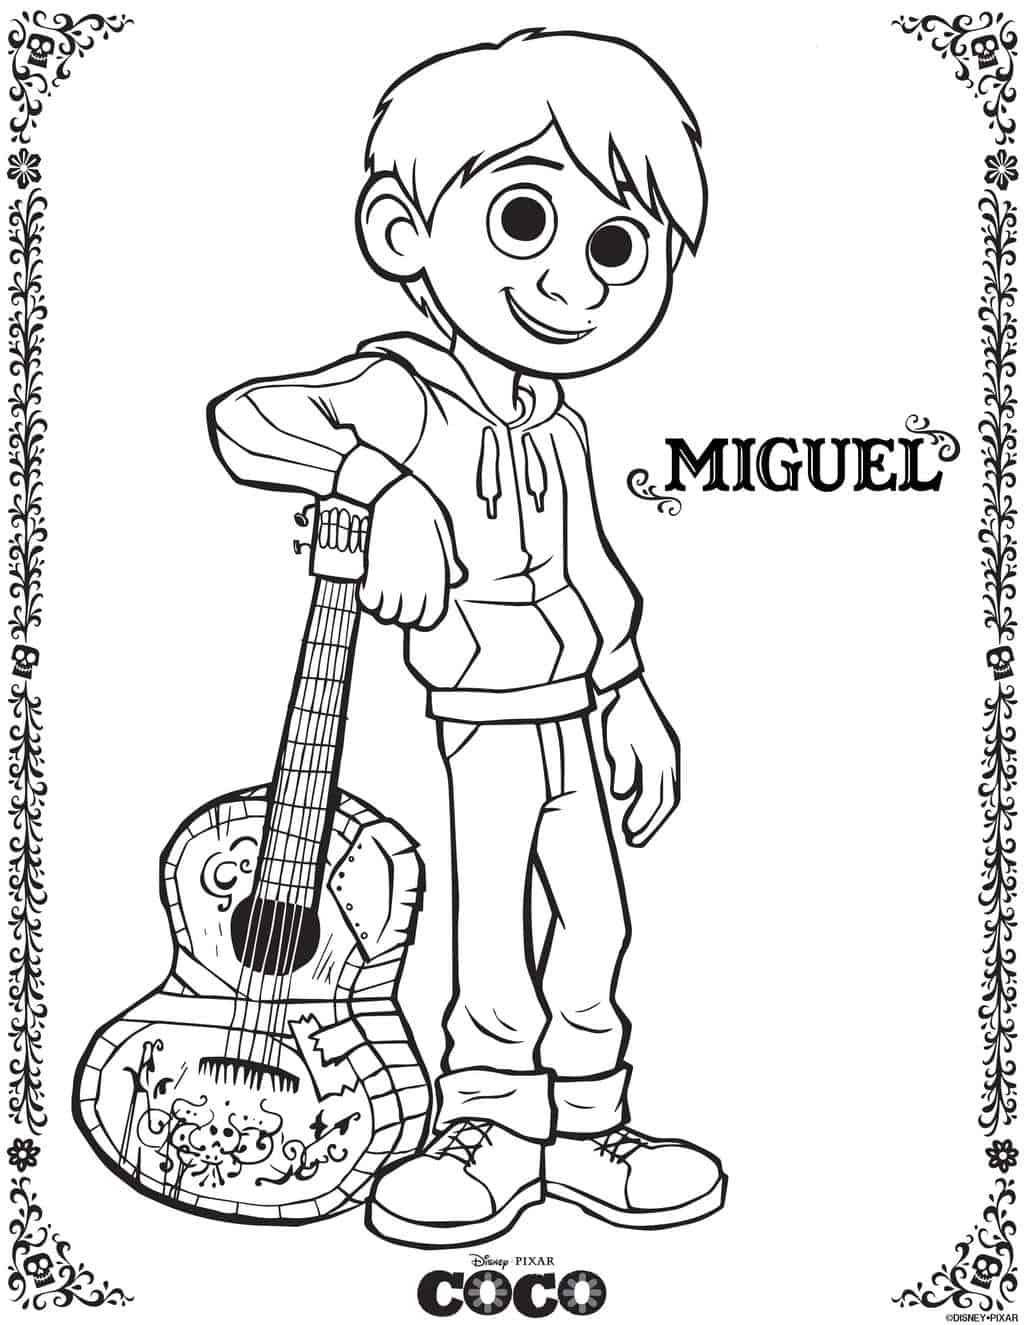 Coco Coloring Pages  Disney s Coco Movie Printables Activity Sheets Made